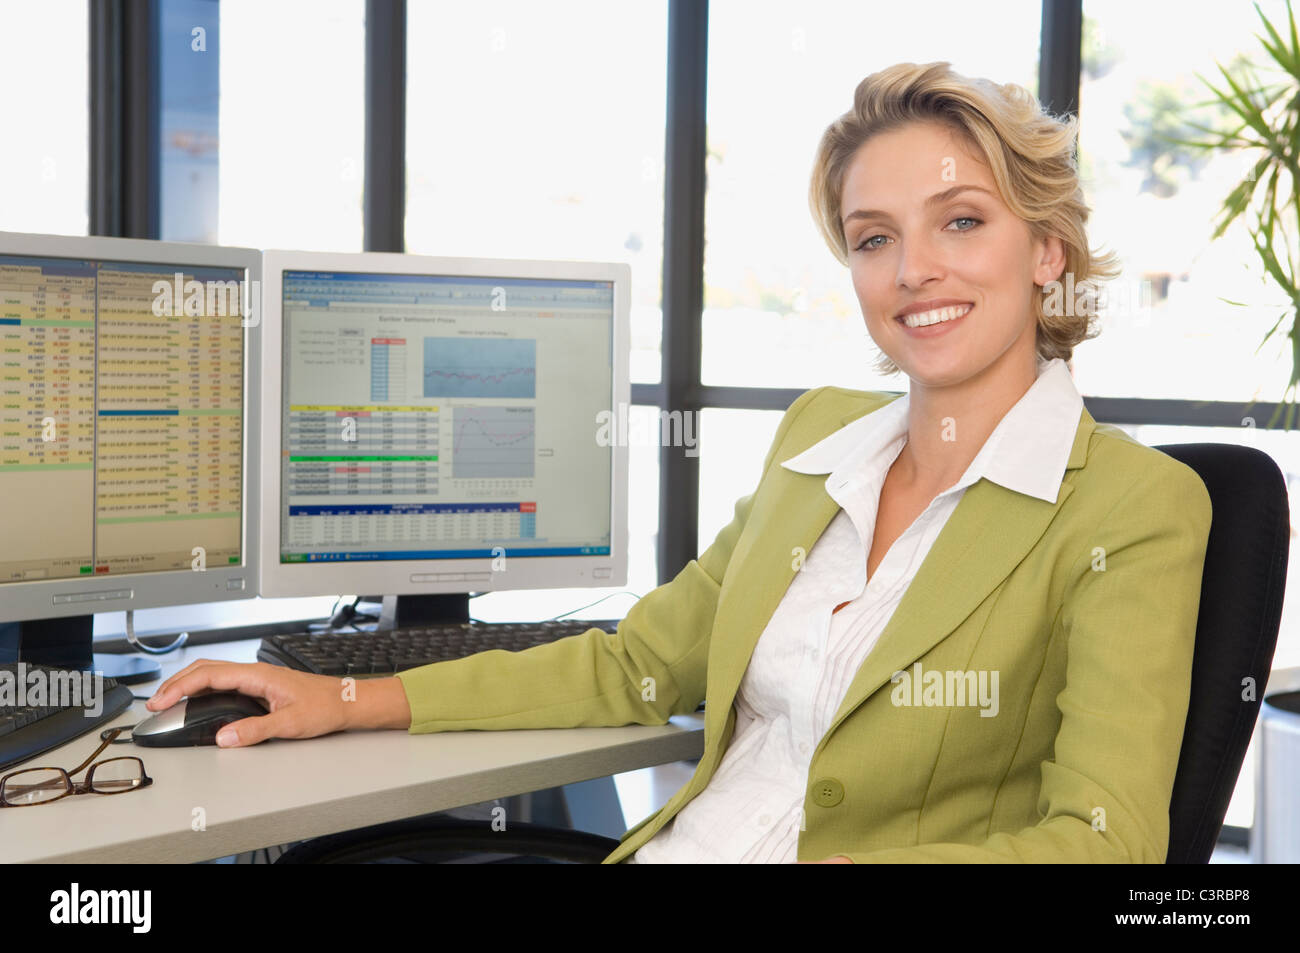 Buisness woman at the computer smiling - Stock Image